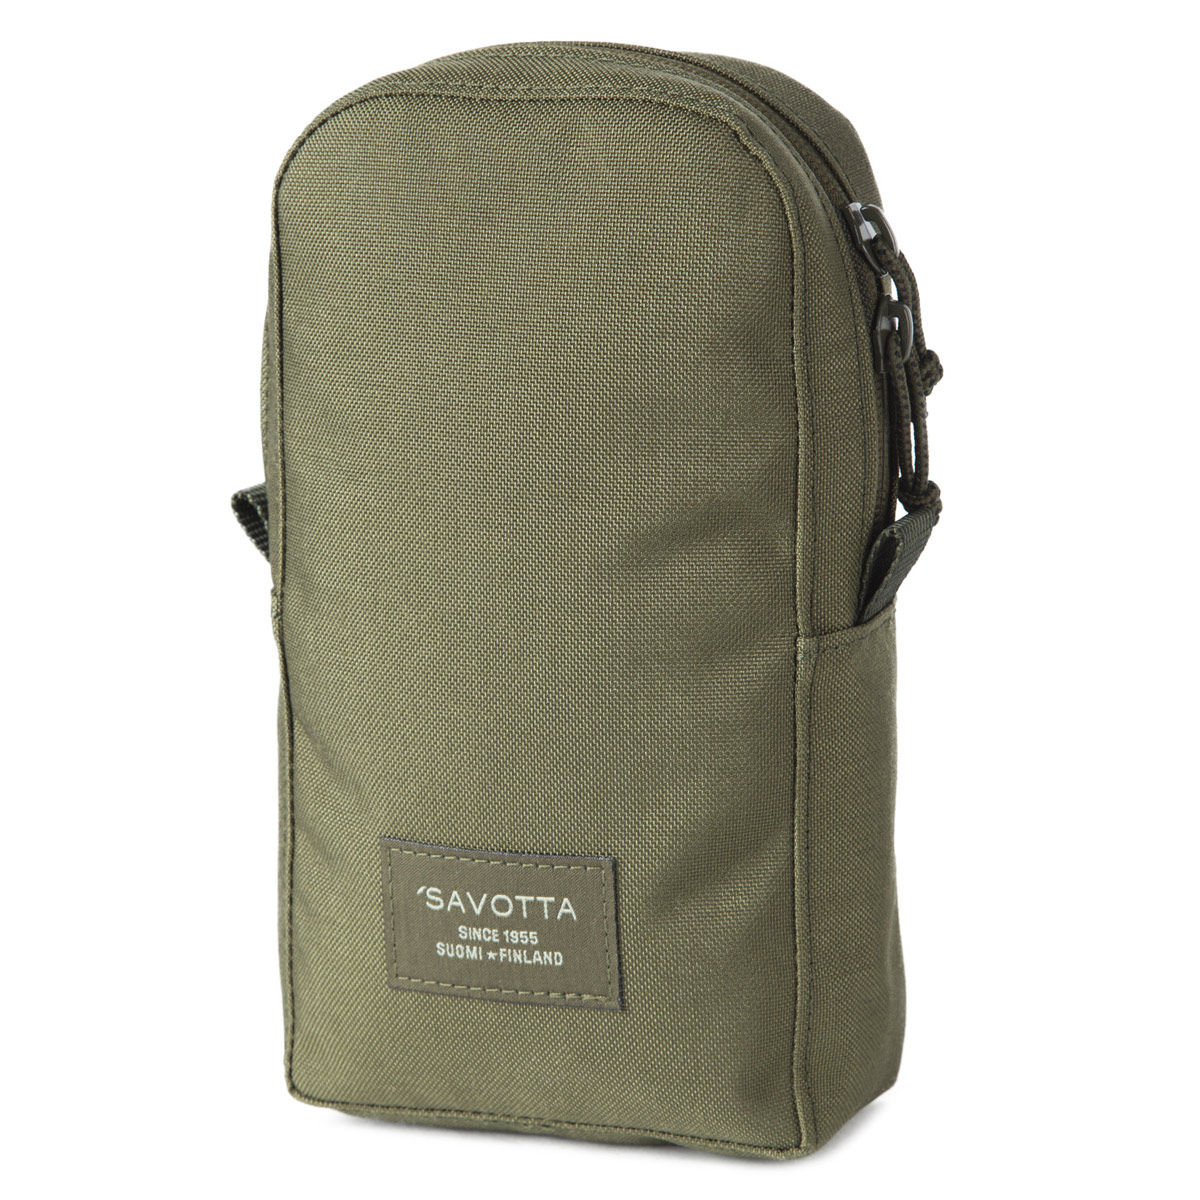 Savotta Vertical Pocket S - Olive Green